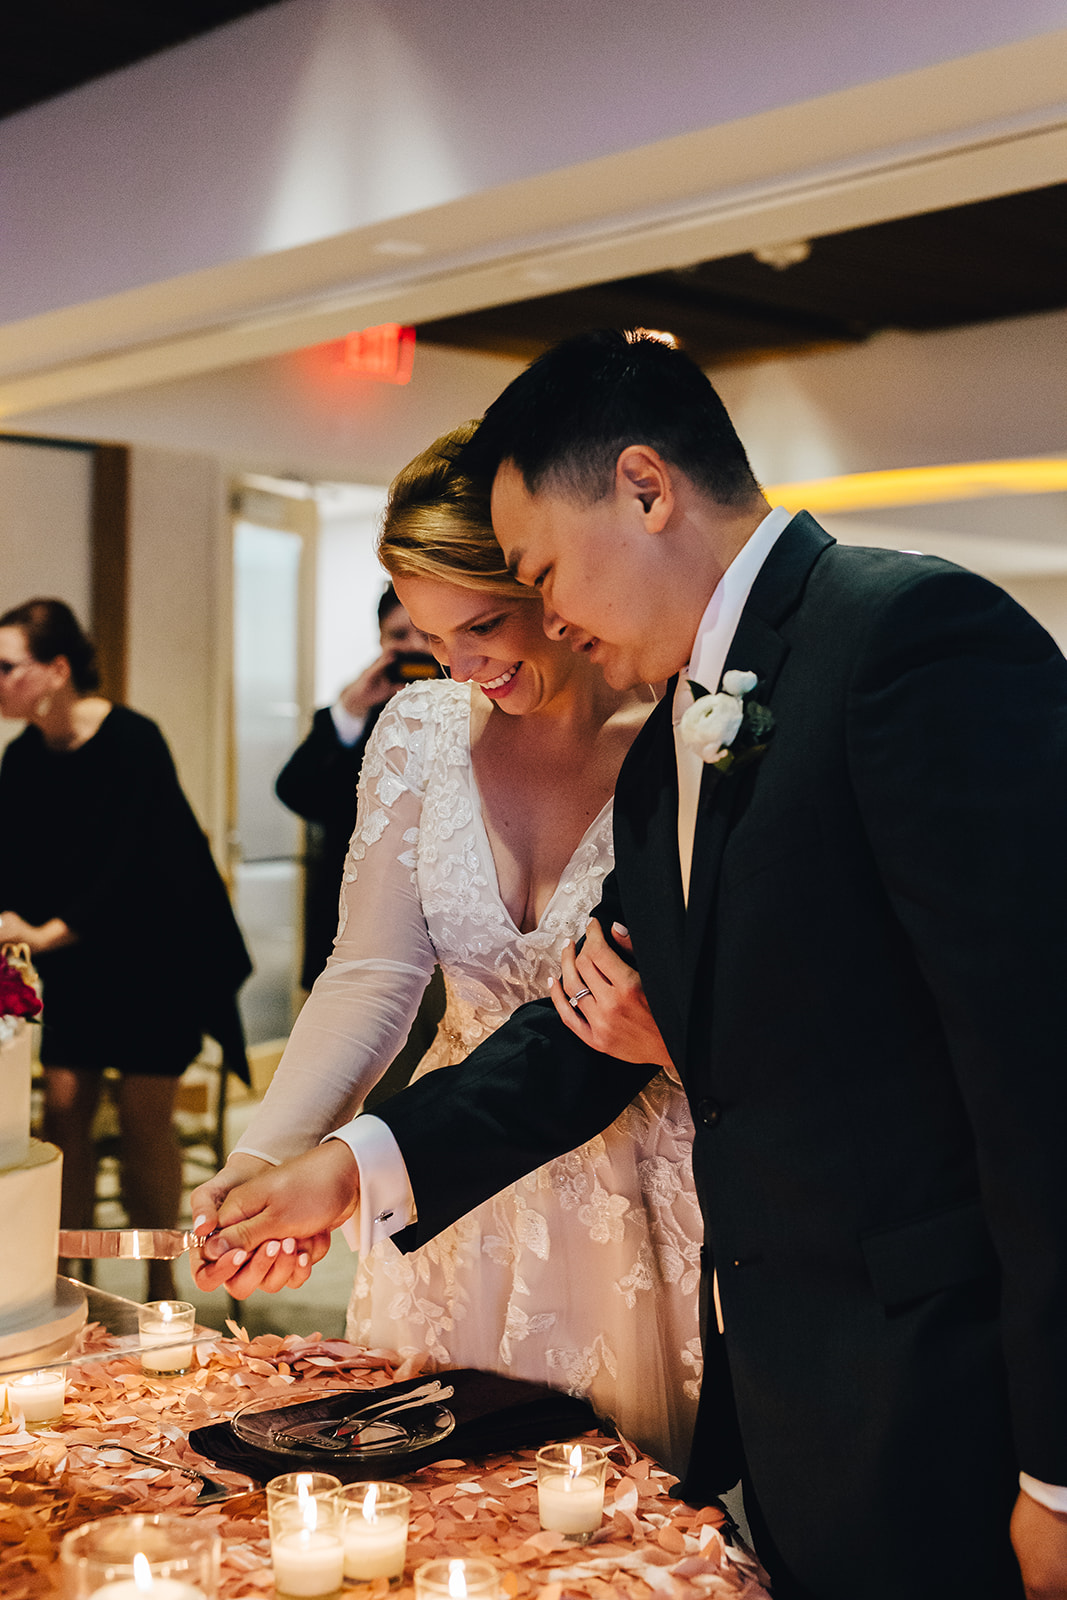 Bride and groom cutting their cake smiling